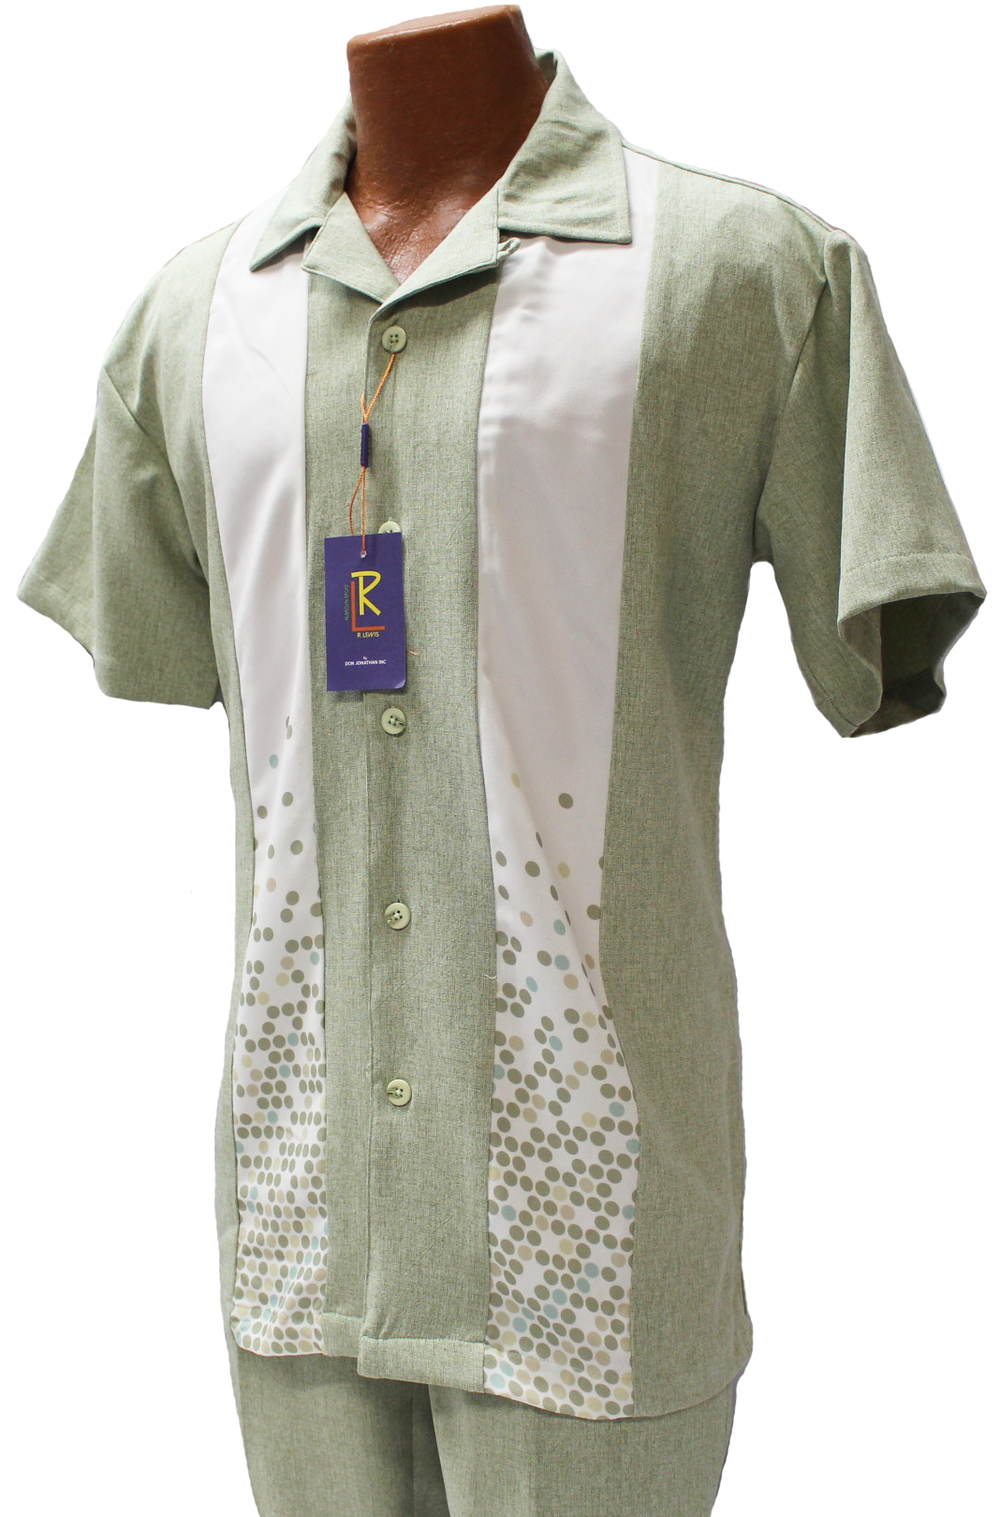 R. Lewis Green Short Sleeve Shirt and Pants Sport Set